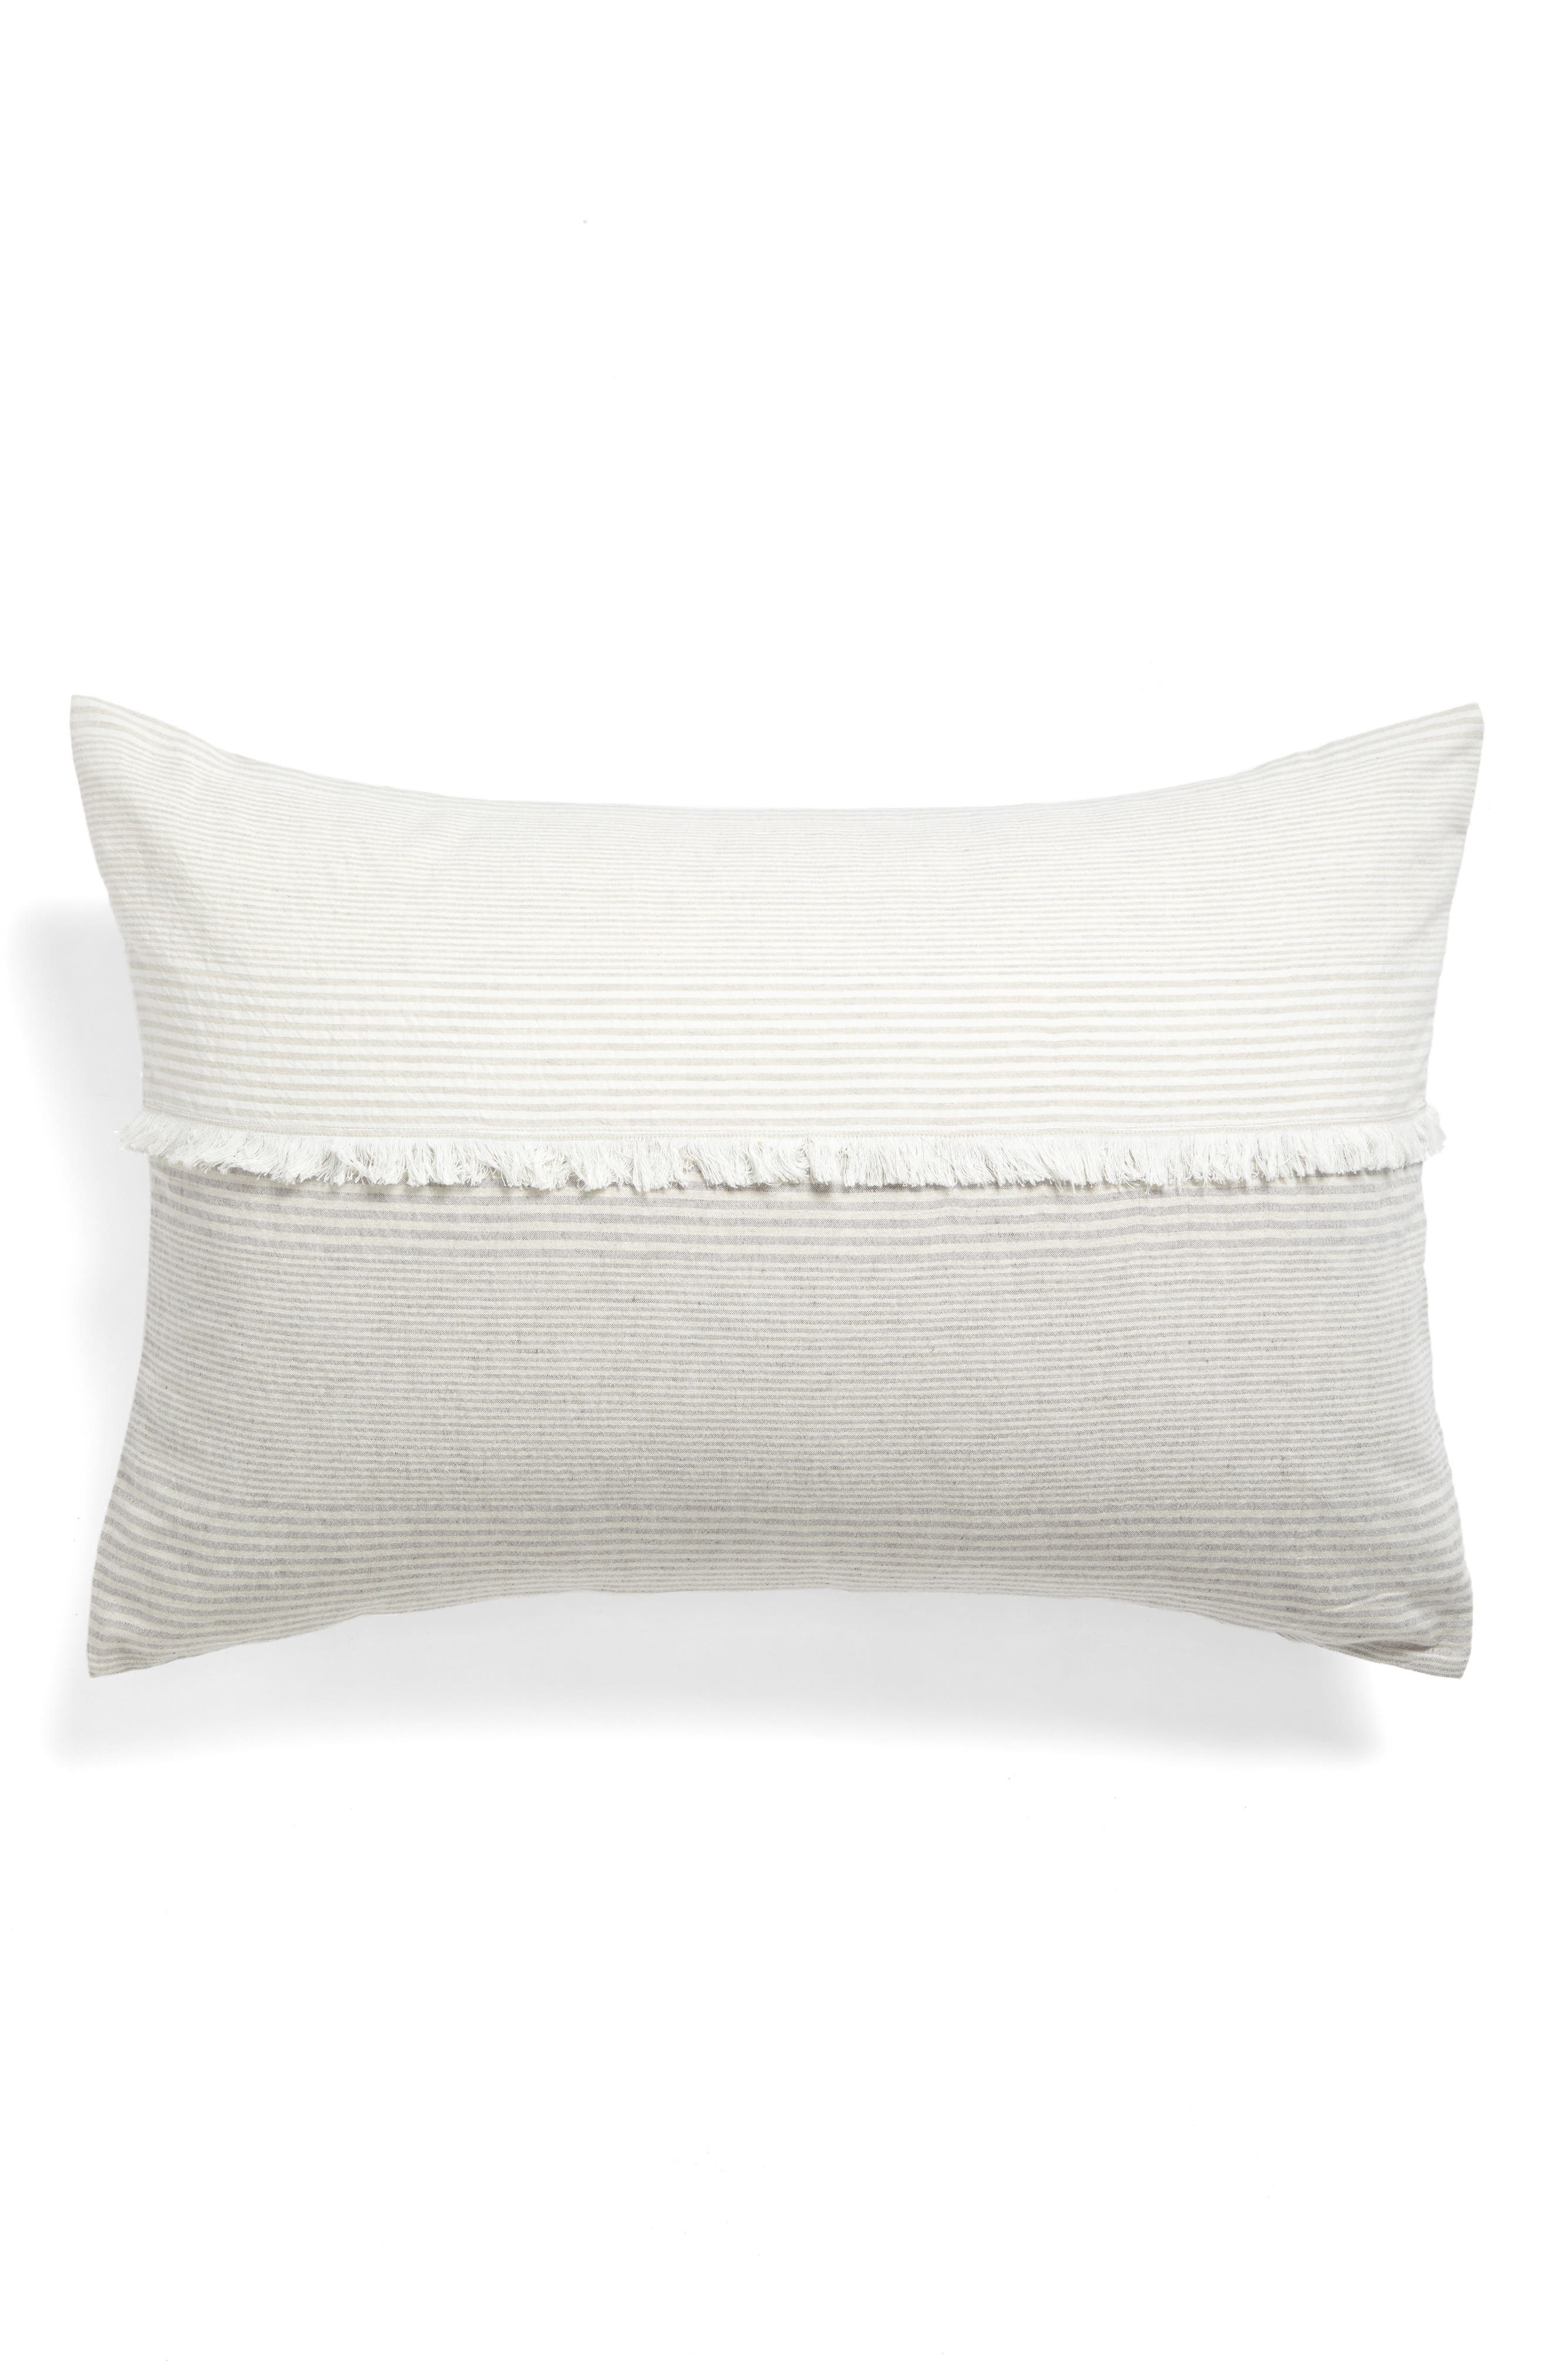 Nordstrom at Home Willa Sham